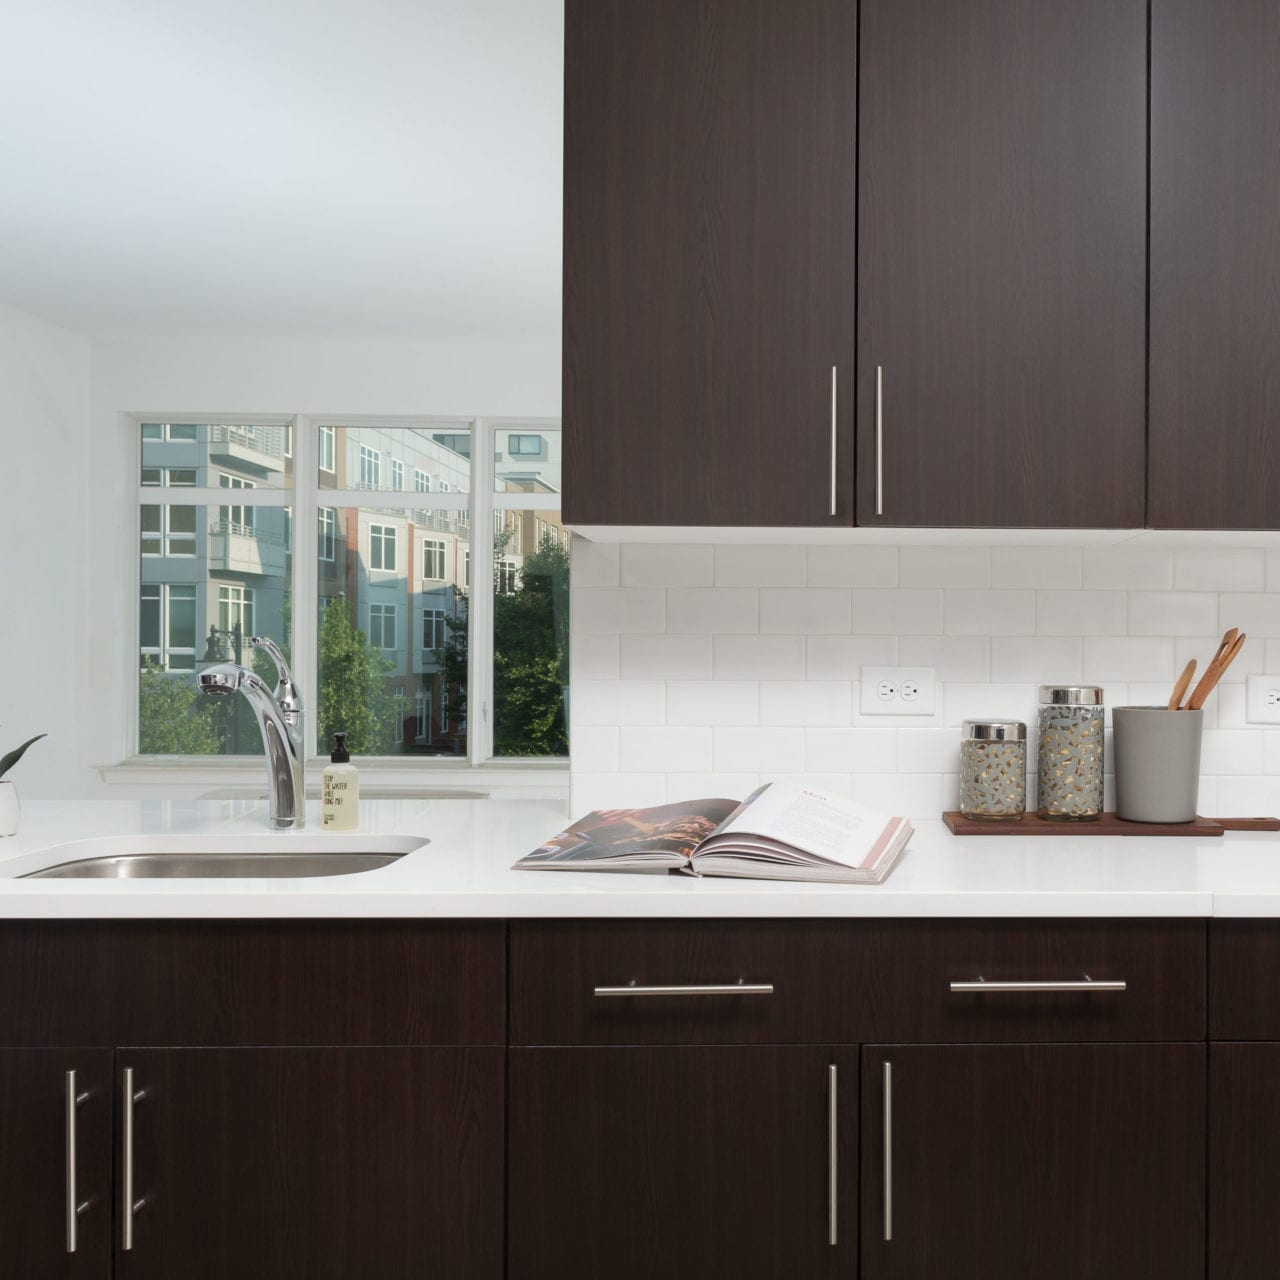 Oak Cabinets and Caesarstone Counters